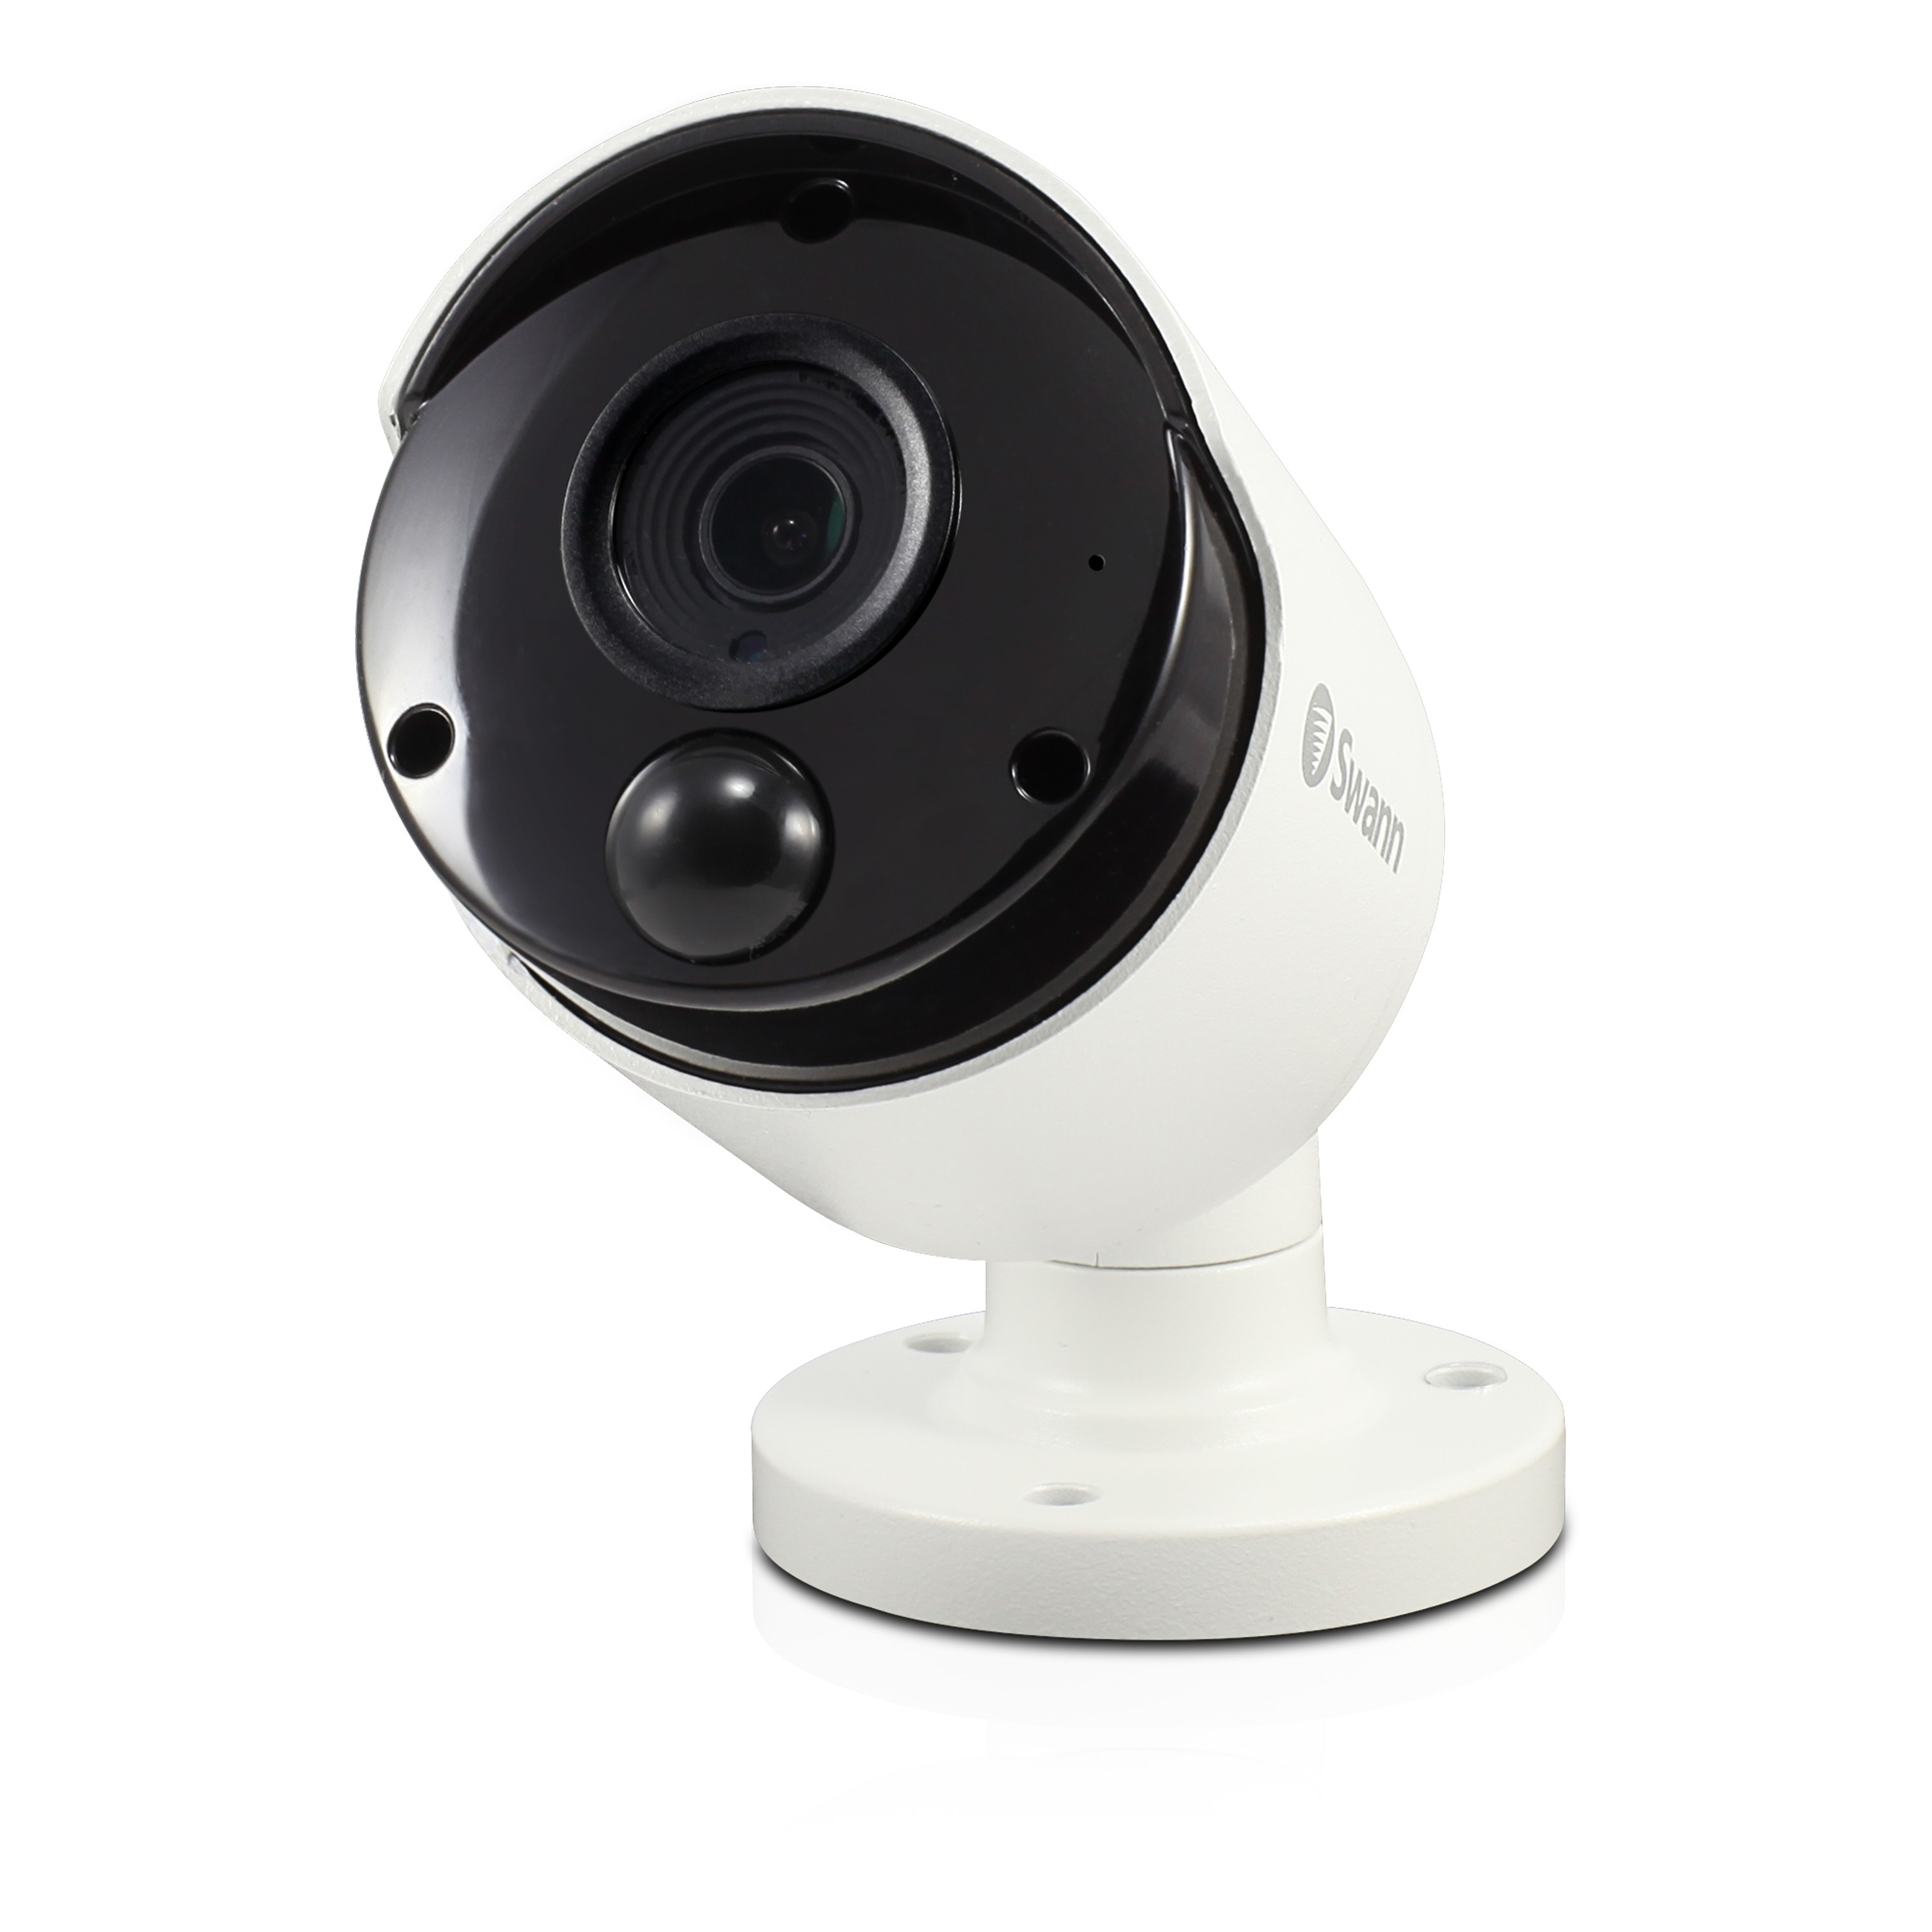 R-SWNHD-865MSB Refurbished Swann Thermal Sensing PIR Security Camera: 5MP Super HD Bullet with IR Night Vision - NHD-865MSB -